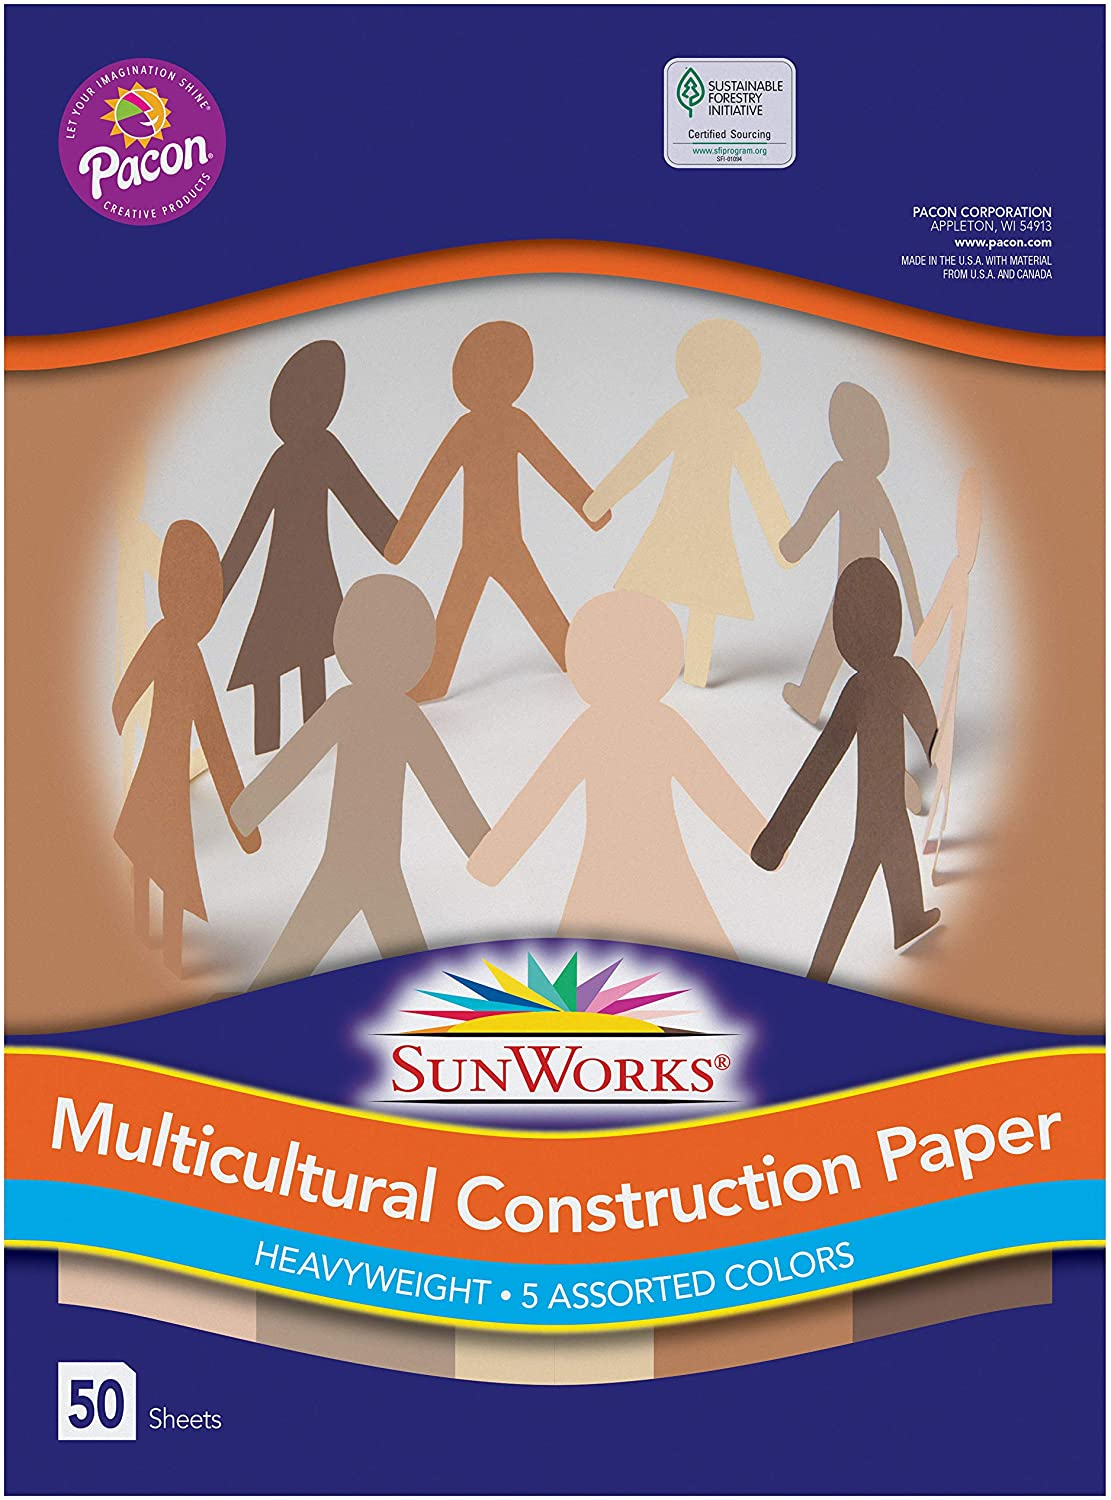 Pacon SunWorks 9512 Multicultural Construction Paper, 12